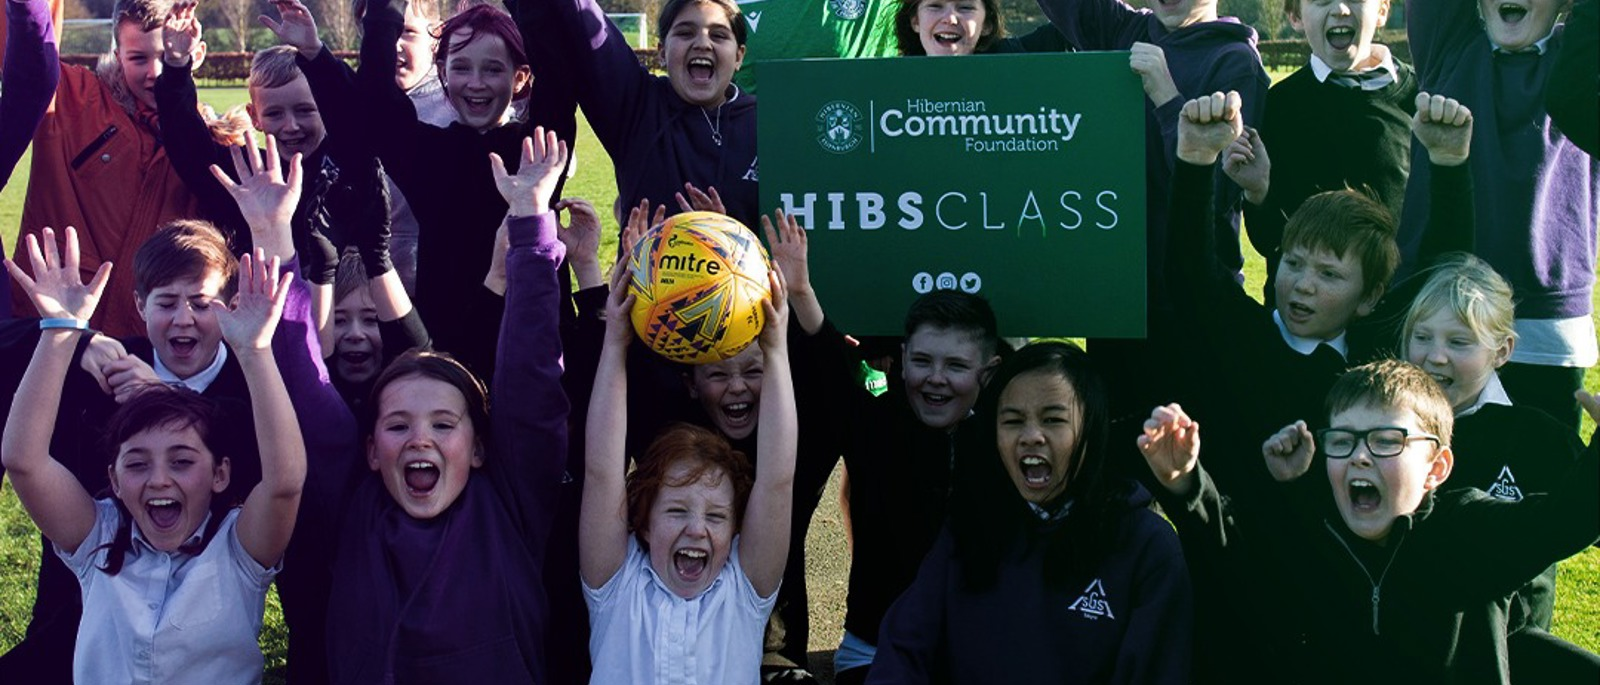 Hibs Class – Scottish FA South East Region Project of The Year 2020